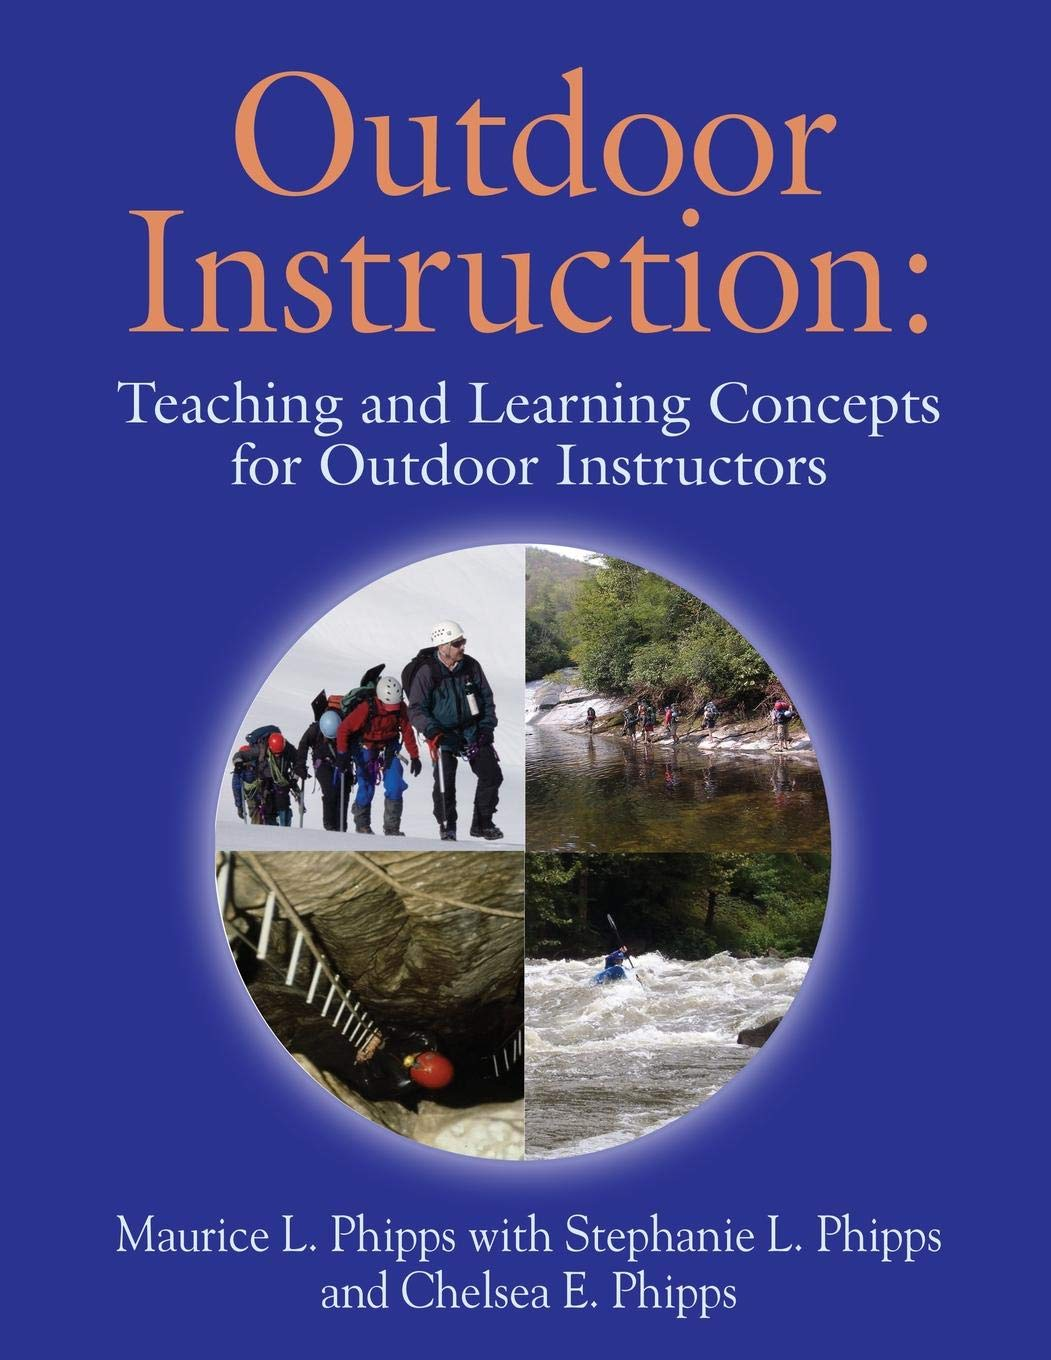 Outdoor Instruction: Teaching and Learning Concepts for Outdoor Instructors PDF Text fb2 book